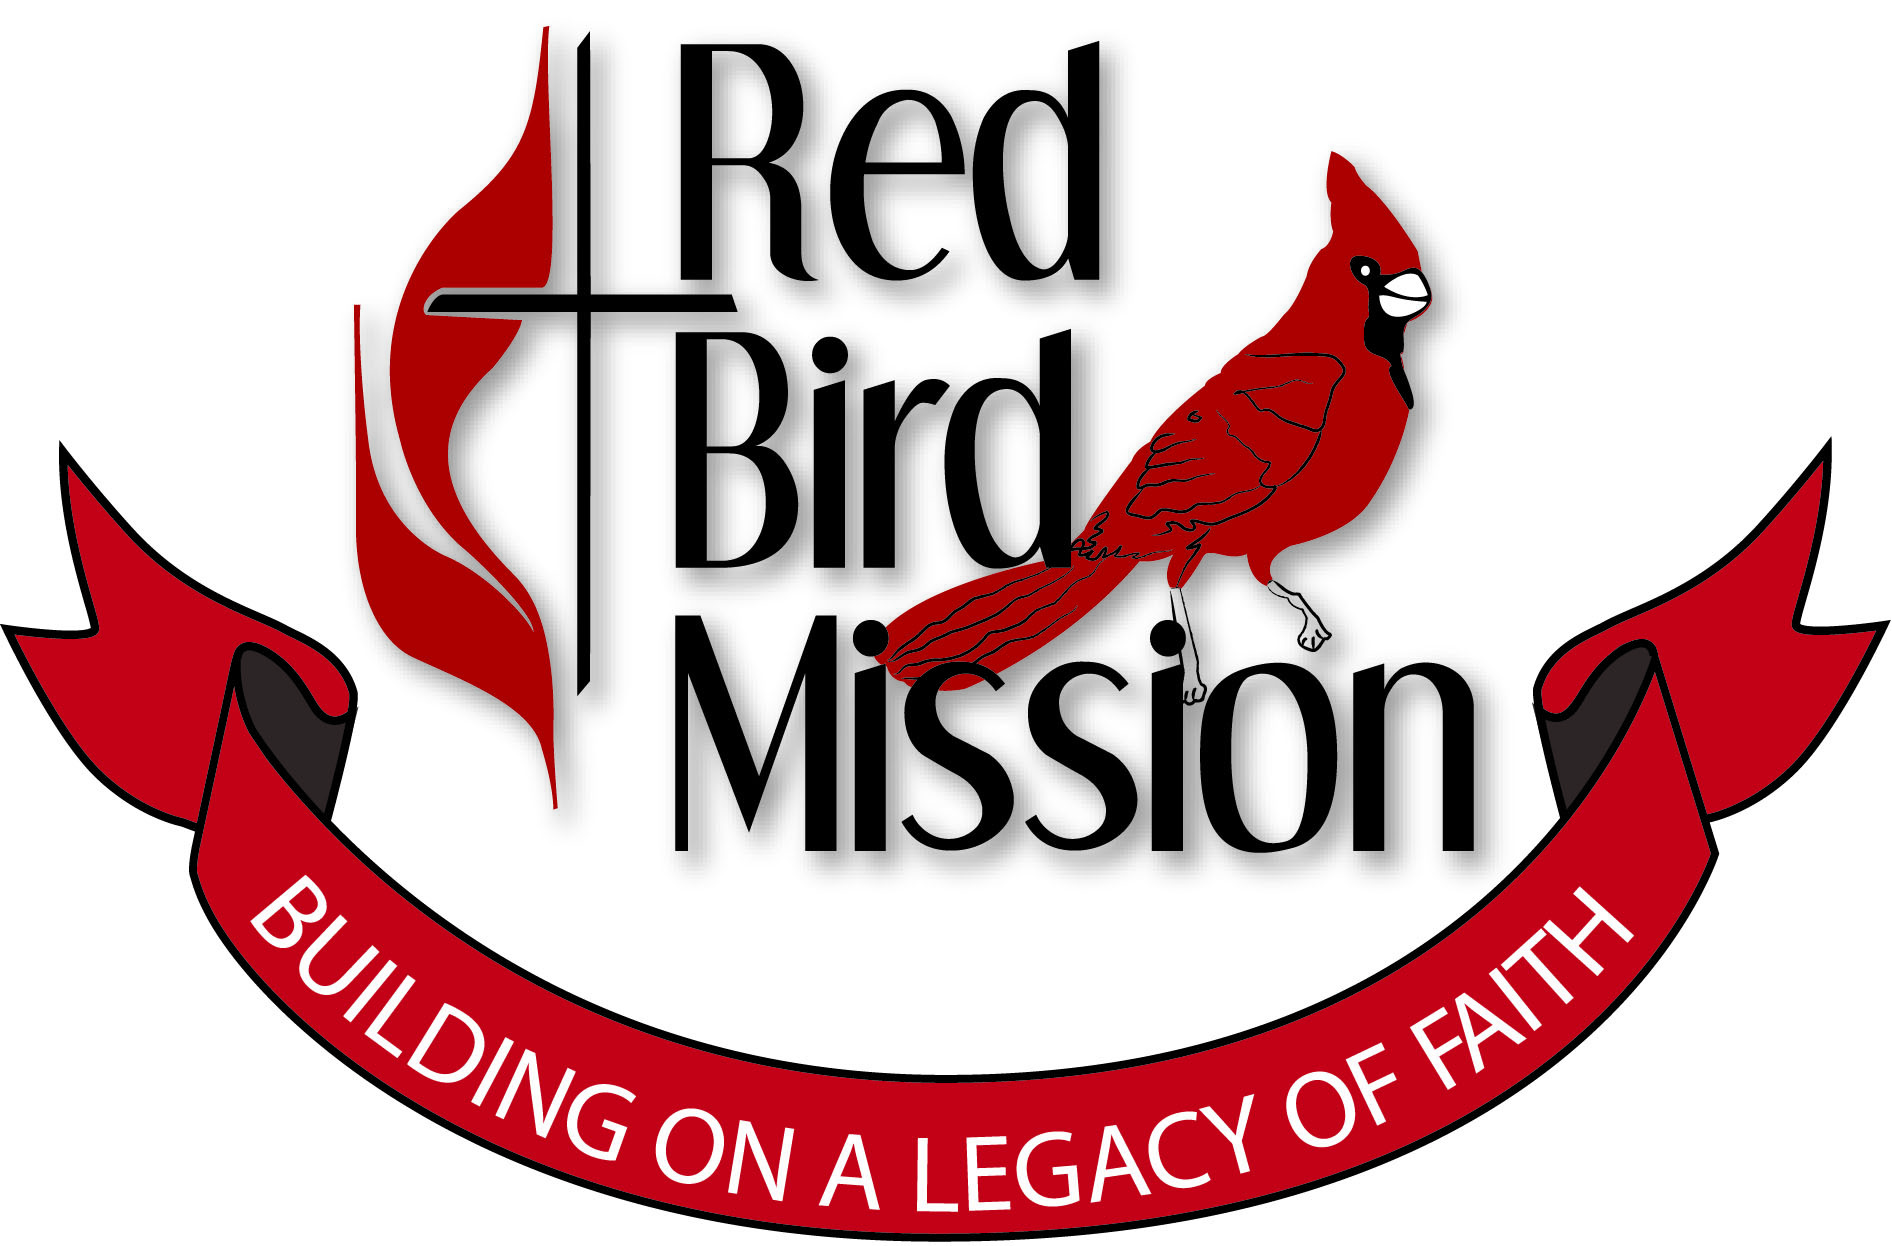 Red Bird Mission, Inc. Online Payment